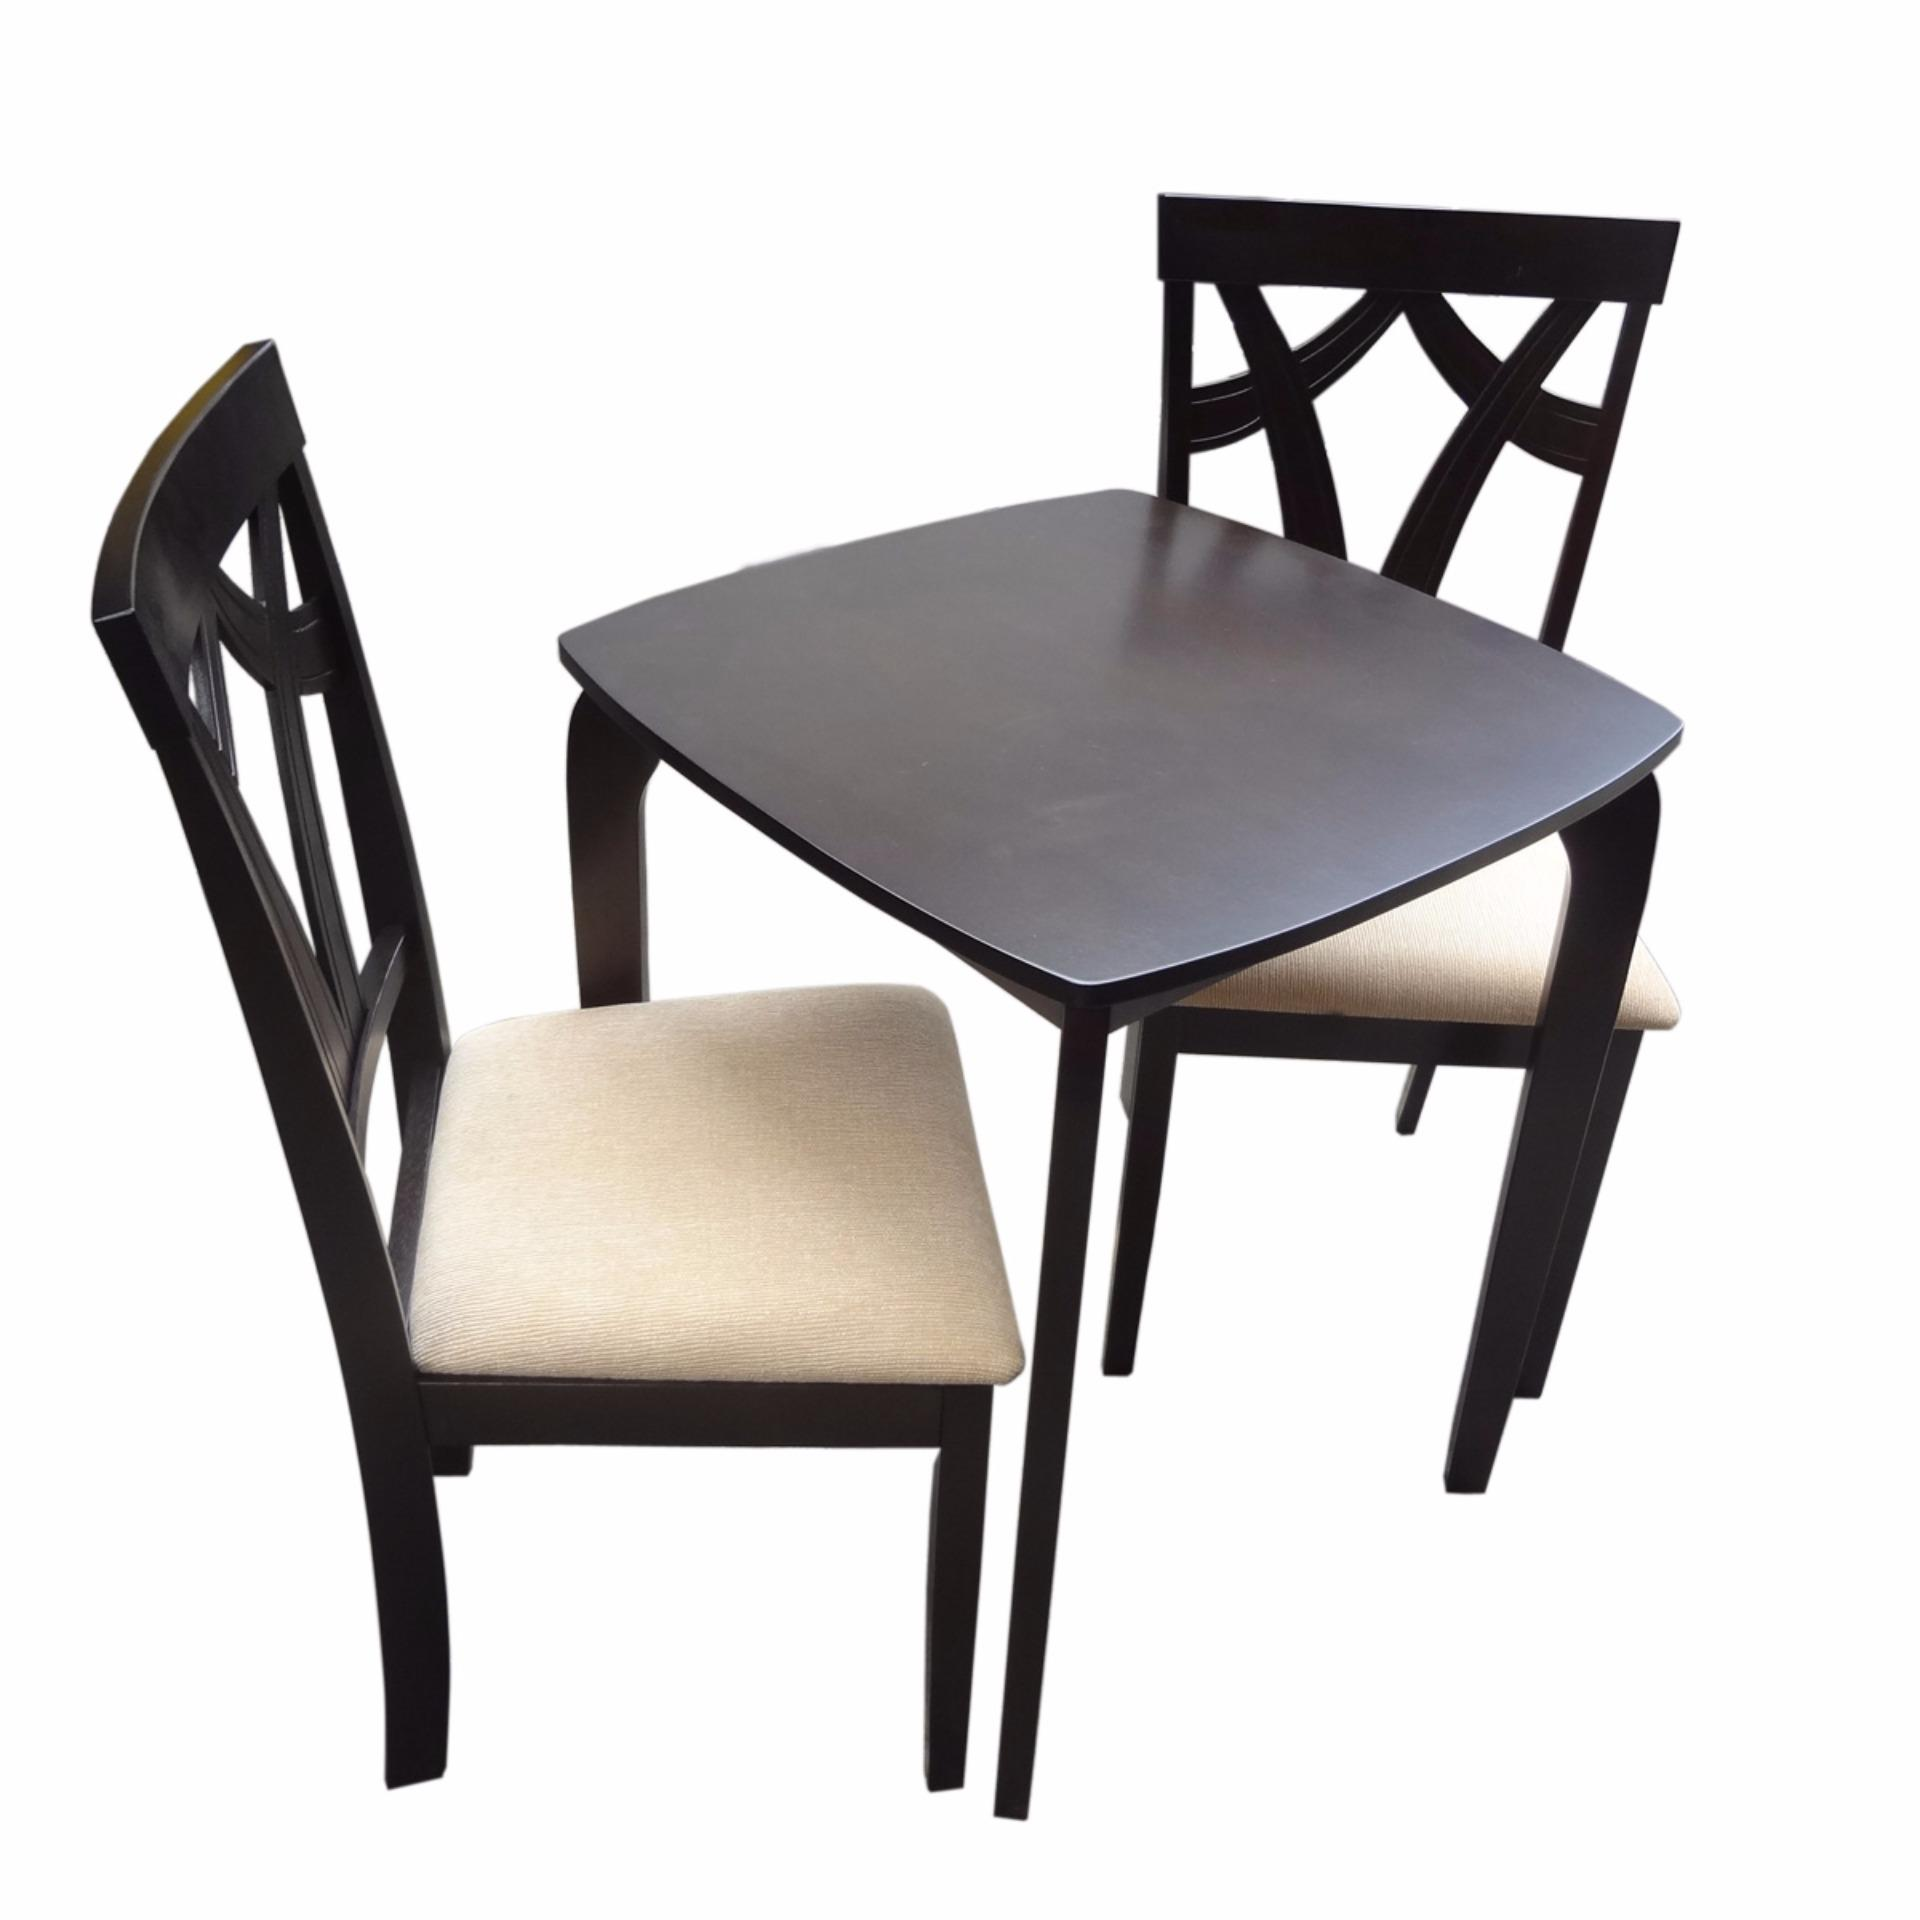 Wooden Dining Set ManilaDining Table For Sale Manila  : hapihomes fixie trixie 2 seater all wood dining set black 1487225126 30694901 ea2126616c4fa0f64ee9212bd3fb886c from algarveglobal.com size 999 x 999 jpeg 65kB